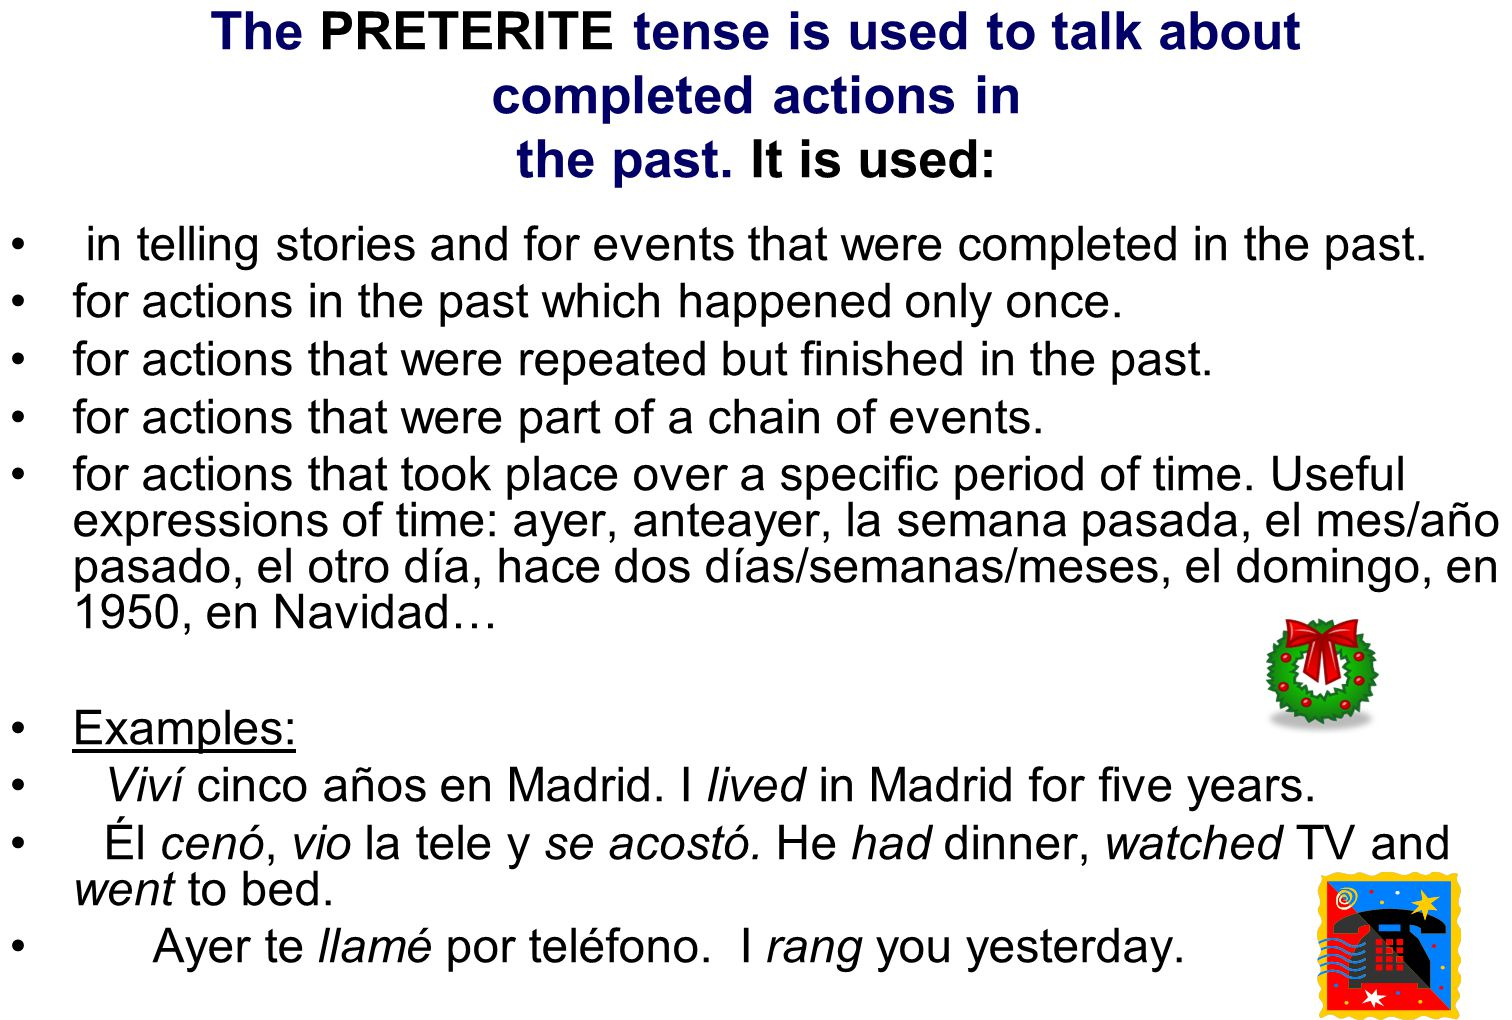 The PRETERITE tense is used to talk about completed actions in the past.